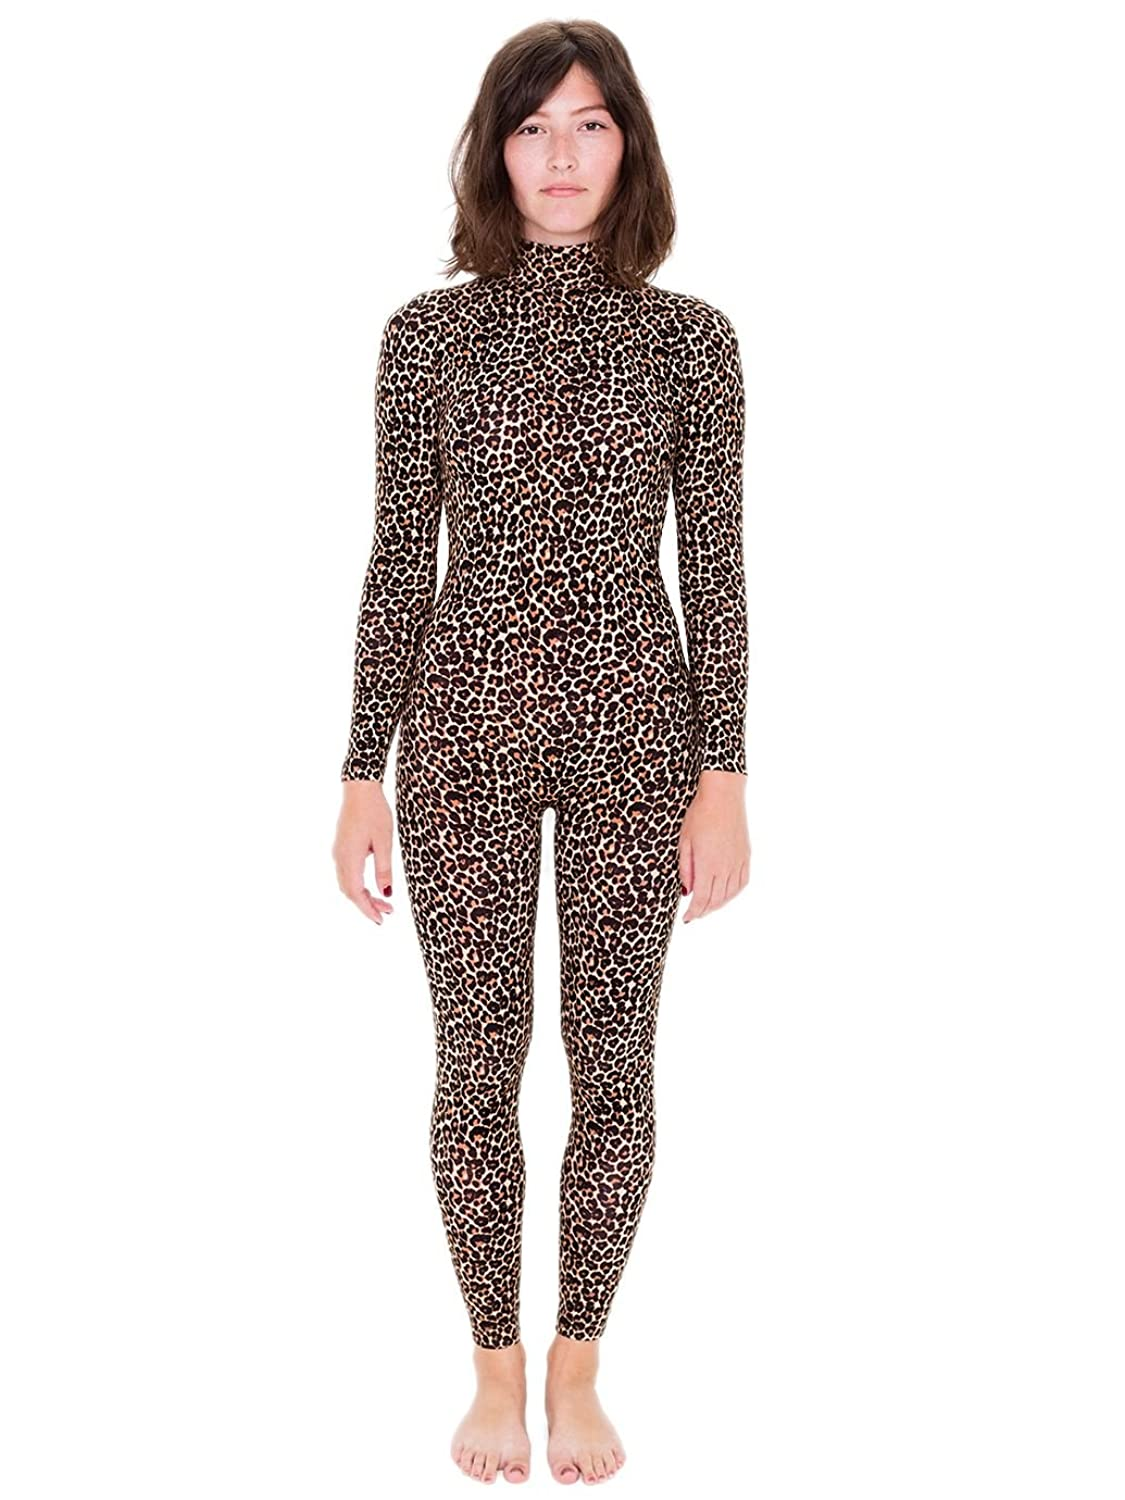 American Apparel Printed Turtleneck Catsuit